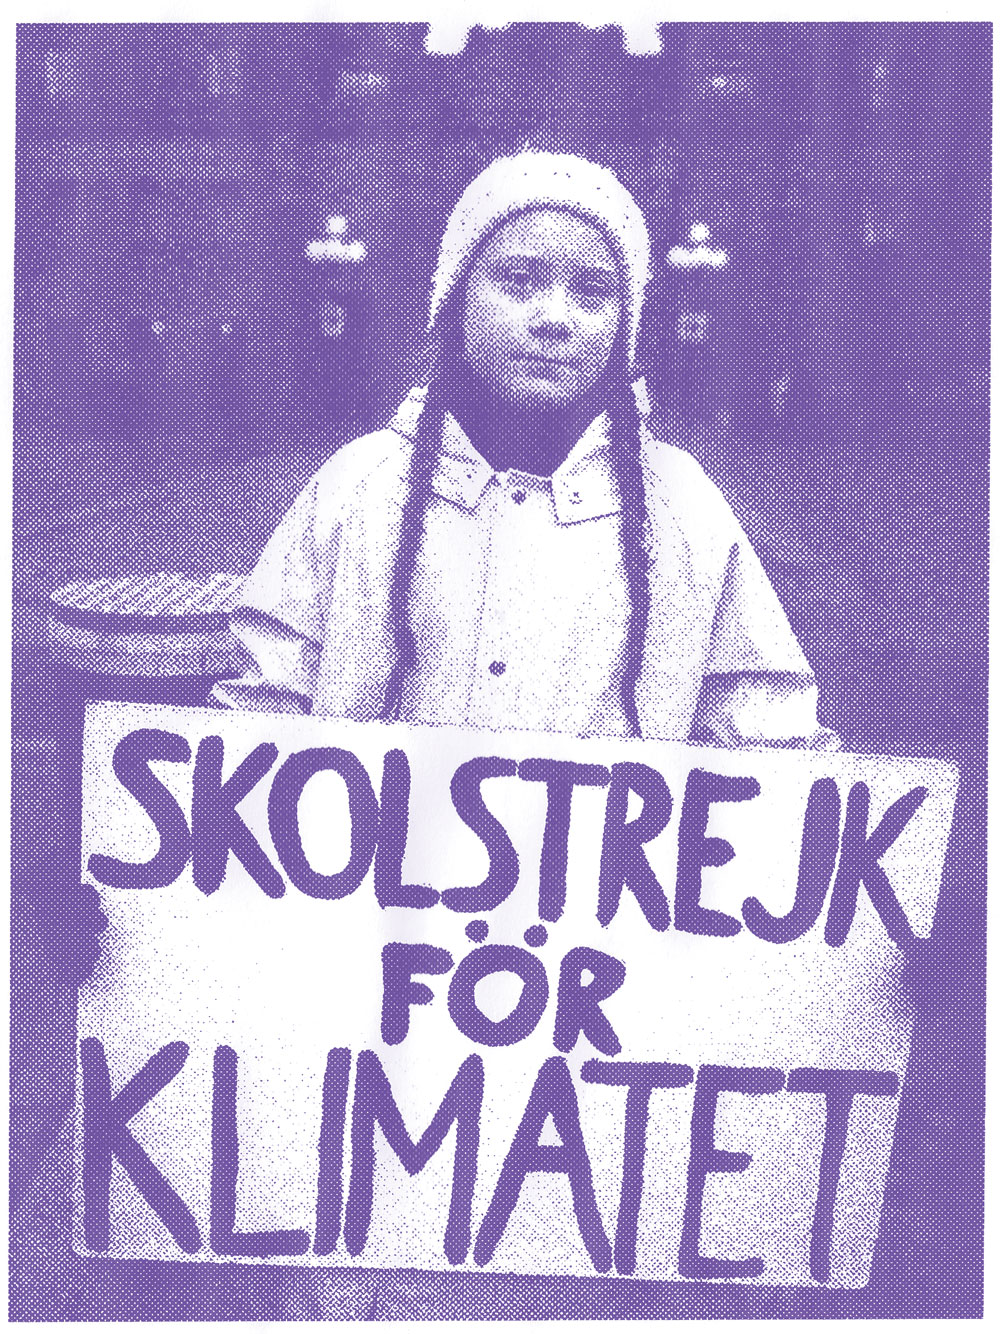 International_Womens_Day-Greta_Thunberg_01.jpg